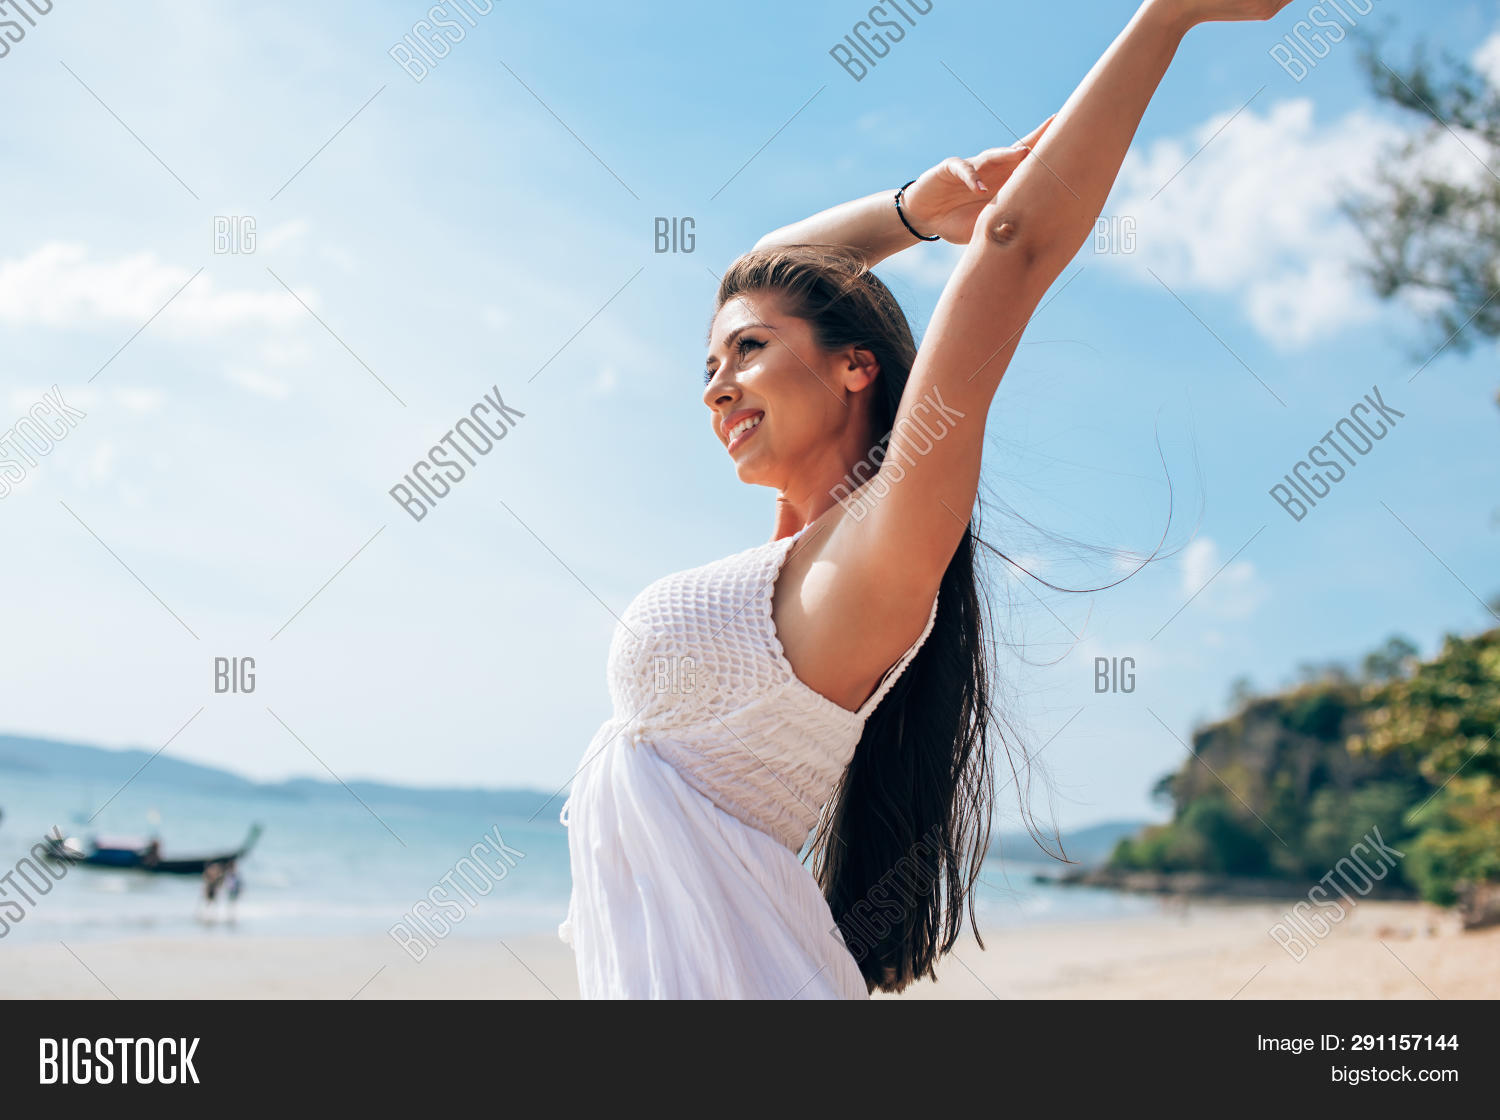 Carefree Young Woman Relaxing On Sunny Day At The Beach, Carefree Young Woman Relaxing On Sunny Day